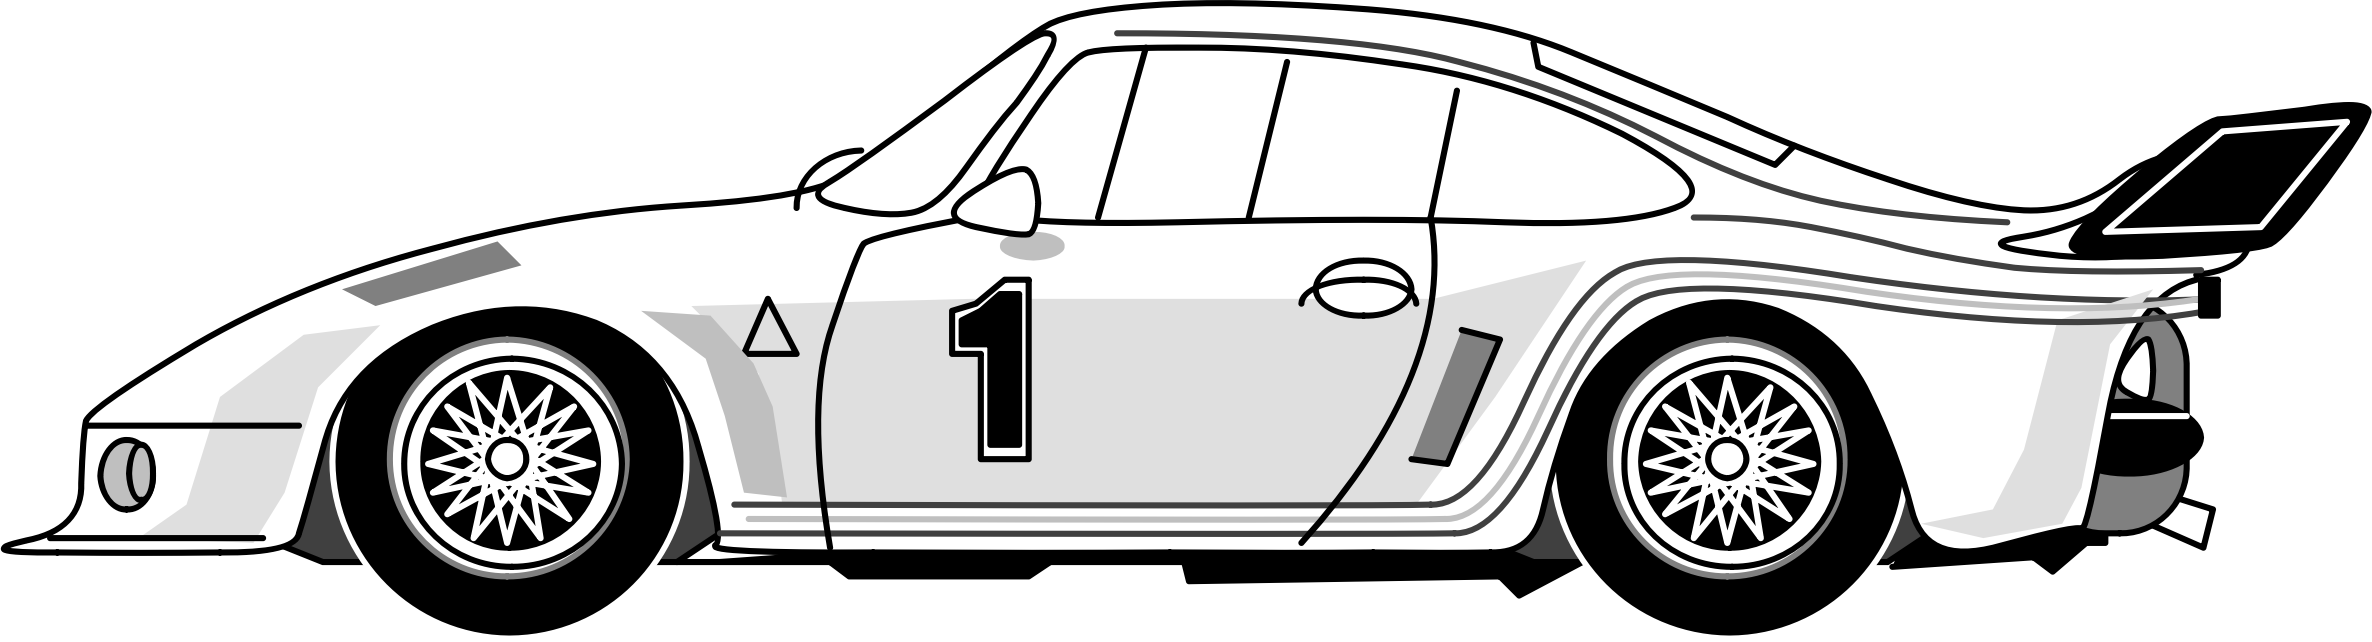 German car clipart svg freeuse Clipart - porsche 911 svg freeuse